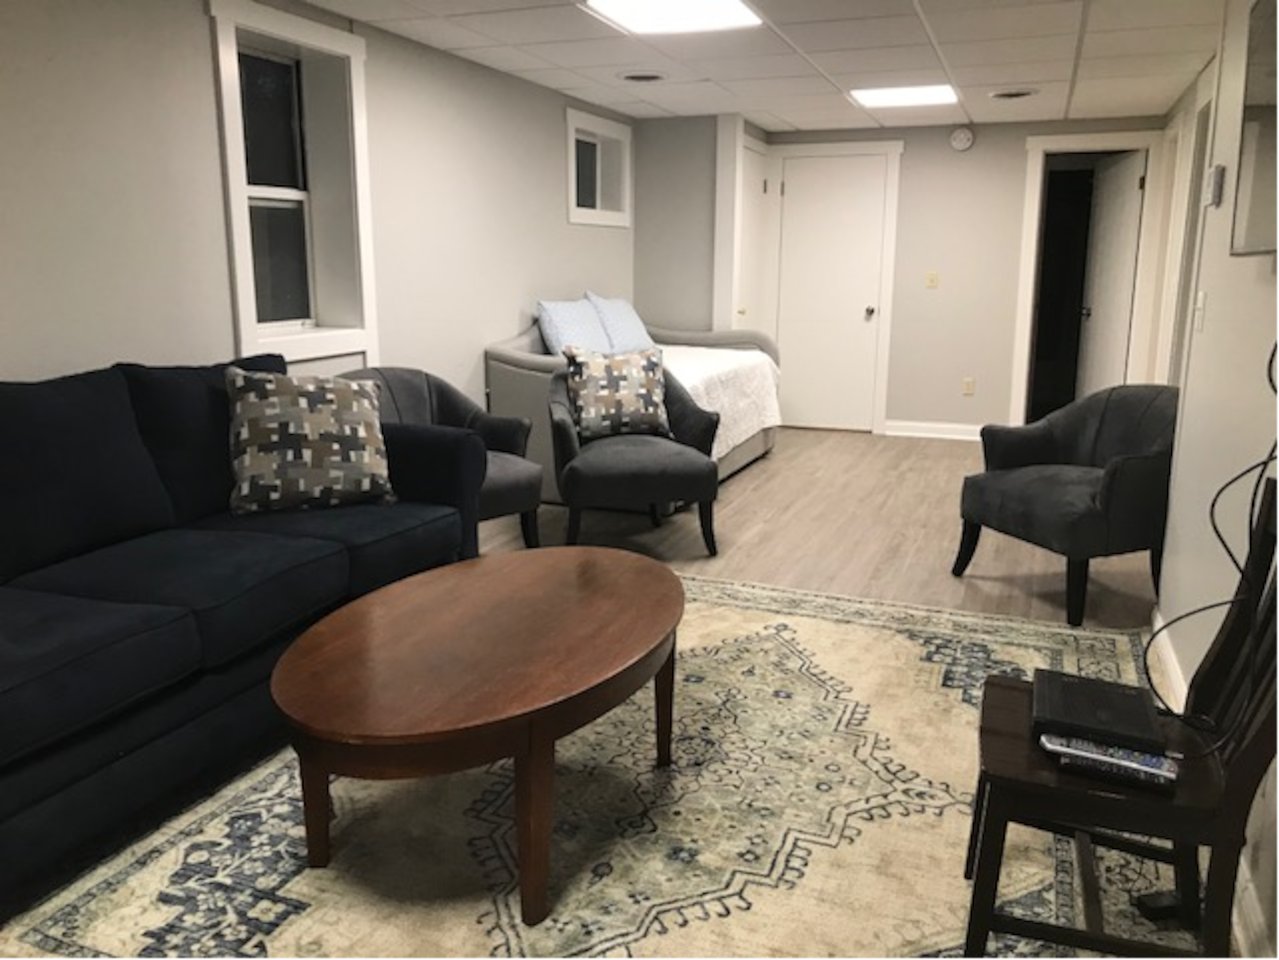 View of main living area.